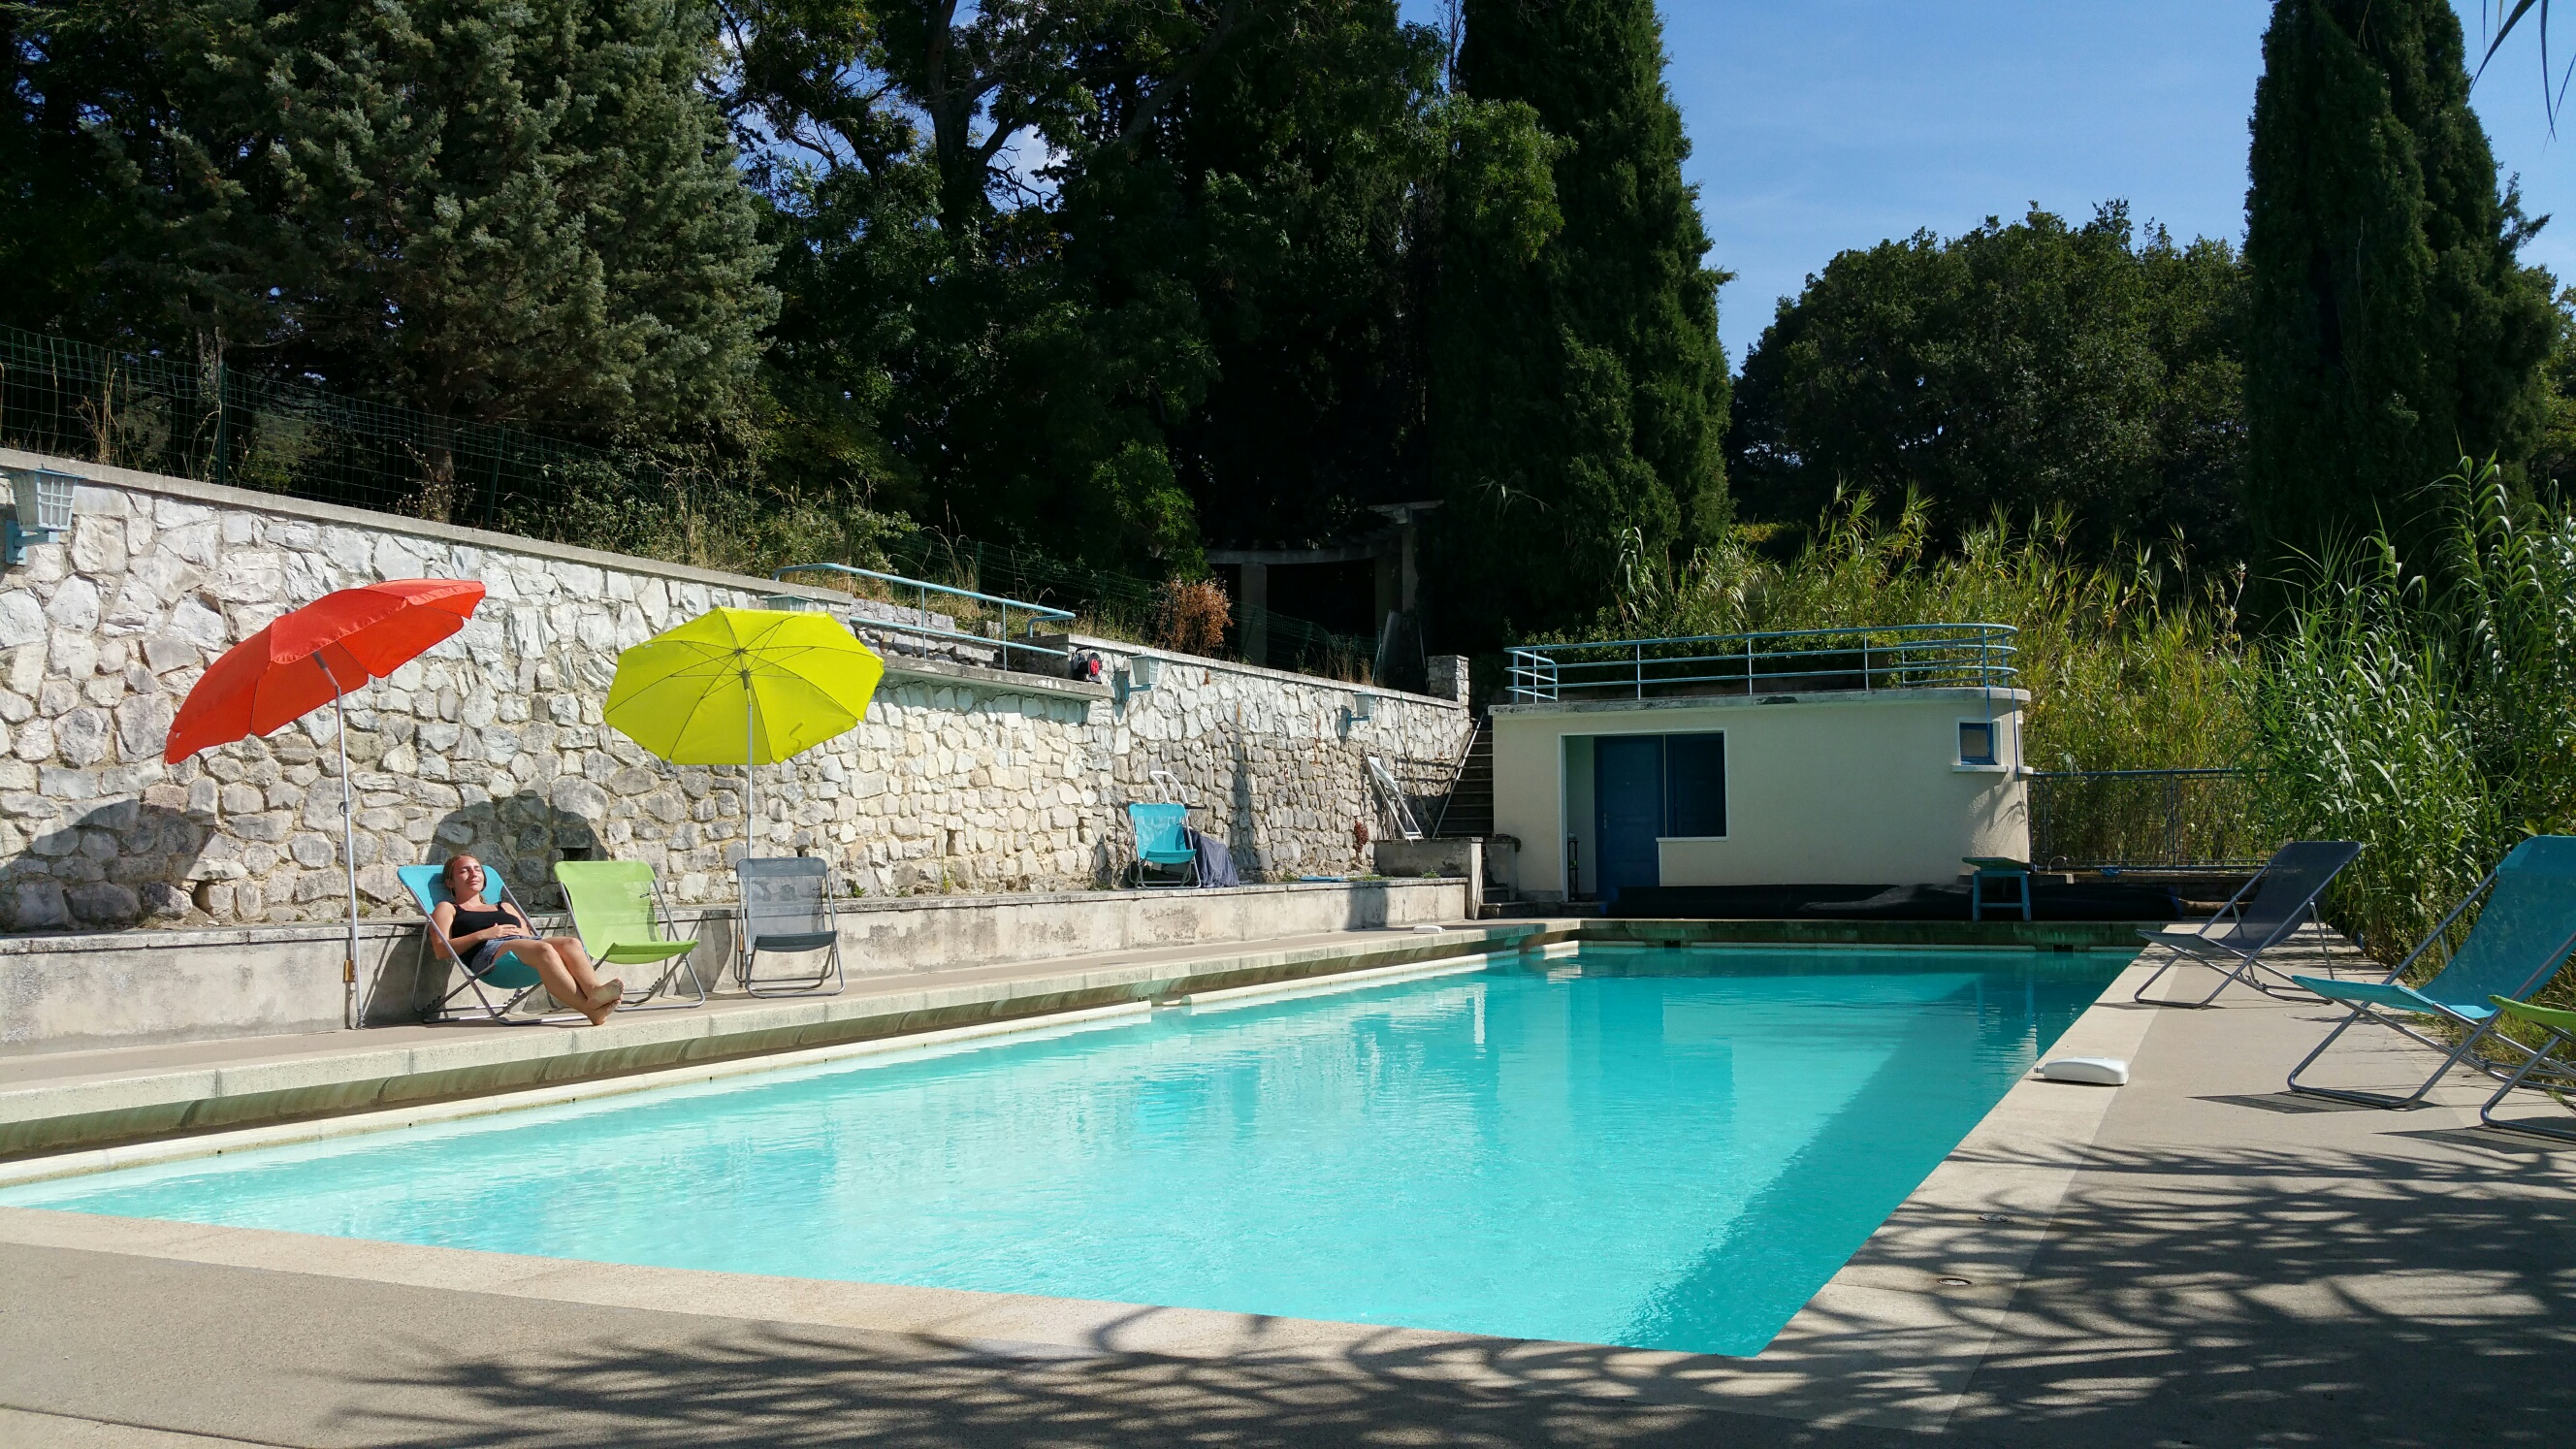 La temp rature de l 39 eau de la piscine oscille entre 28 et for Temperature piscine